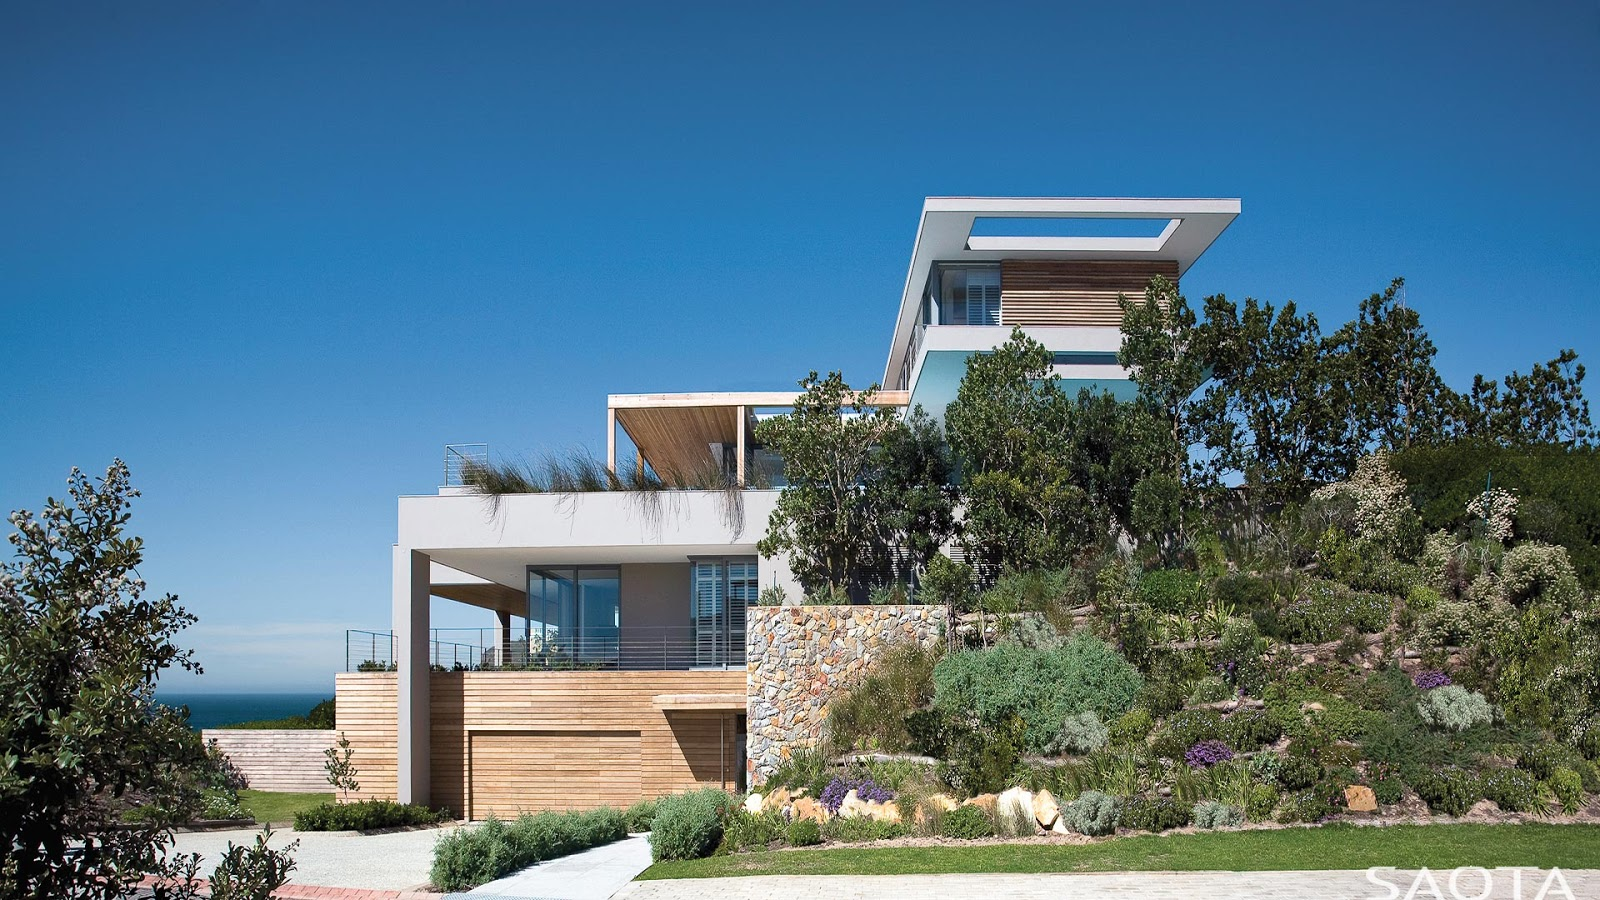 Plett 6541 Cape Town, South Africa By Saota